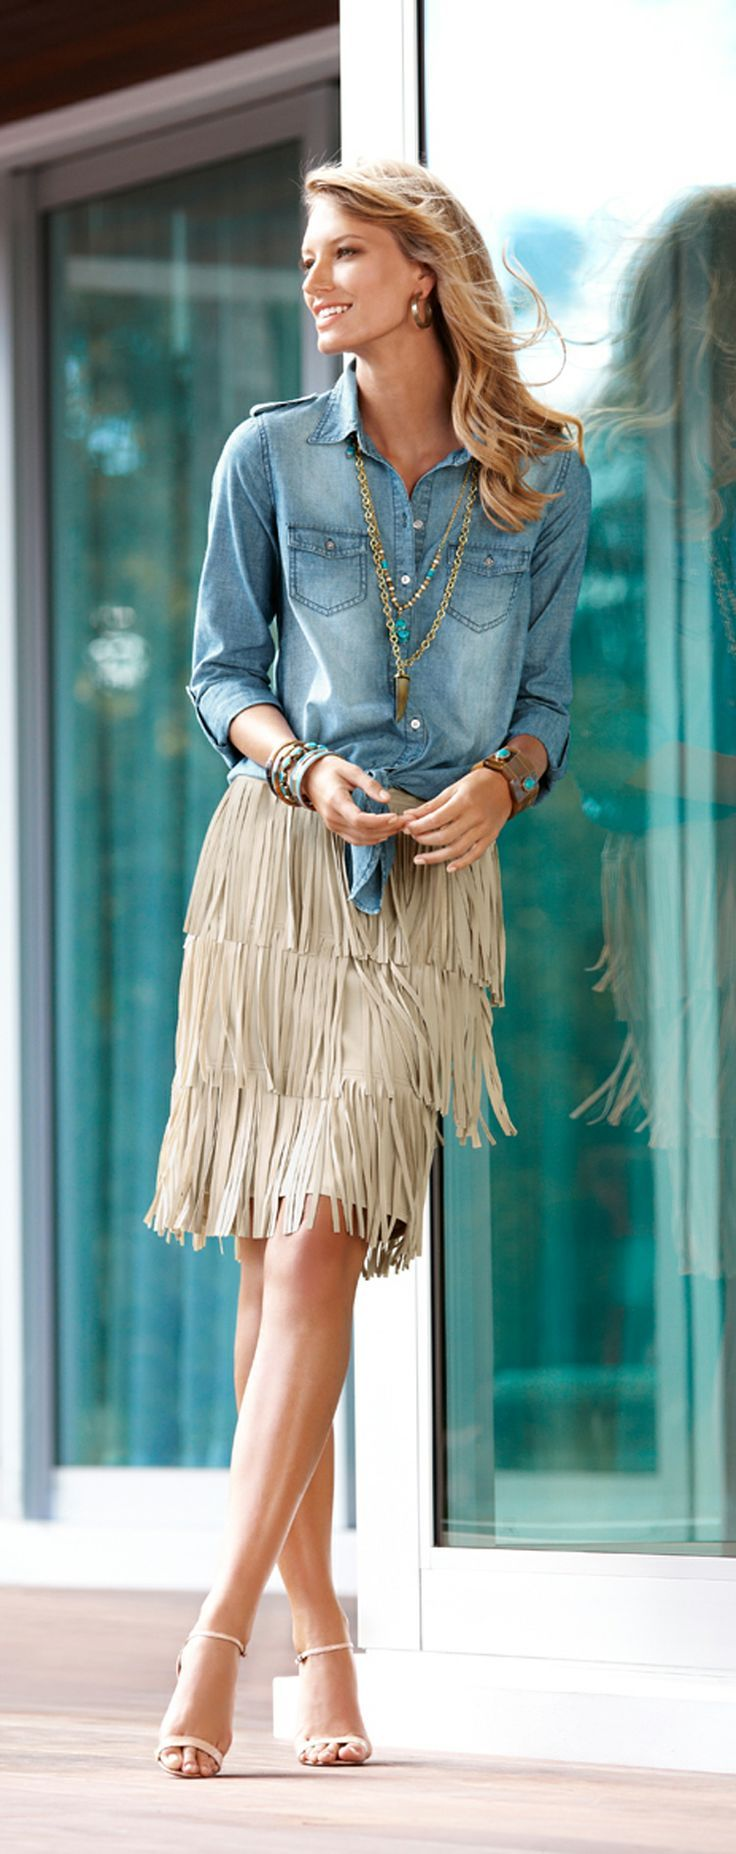 Fringe is in and fall is coming. Find my favorite white fringe sweater at www.themilleraffect.com/oxfords